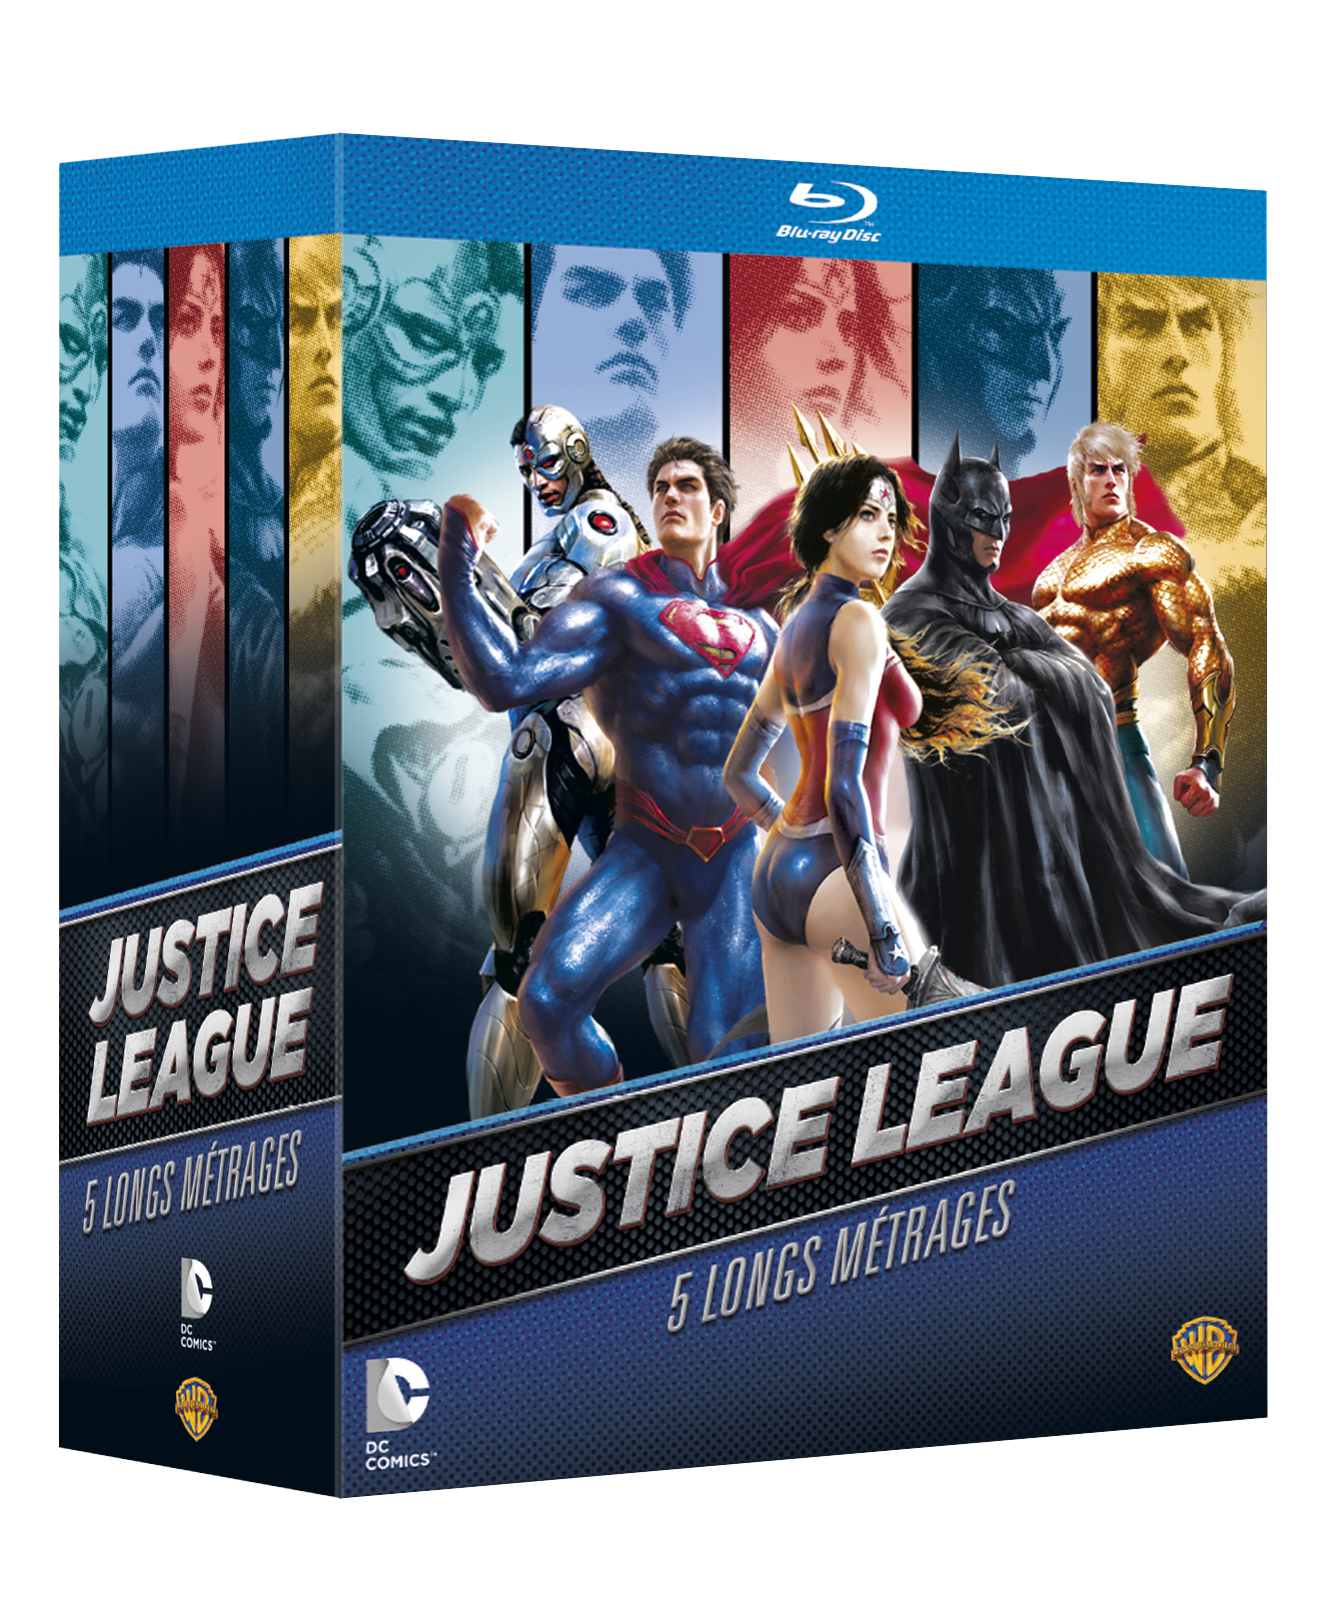 Coffret blu-ray justice league